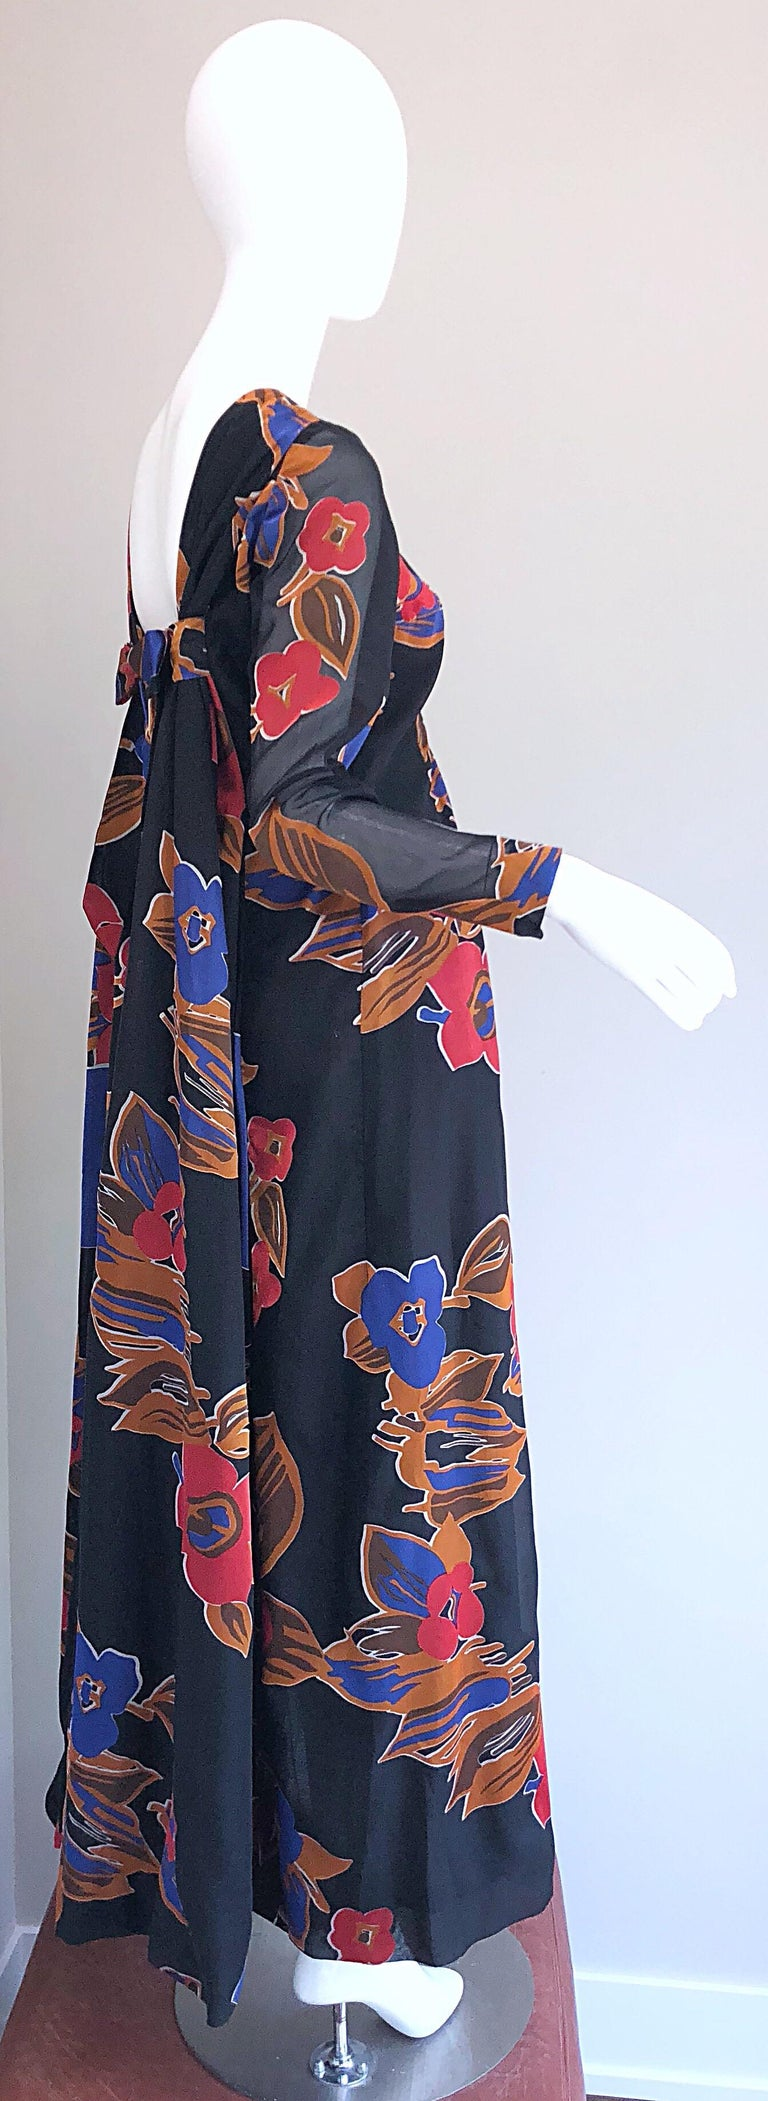 1960s John Boyle Bishop Black + Brown + Red Abstract Trained 60s Gown Maxi Dress For Sale 1